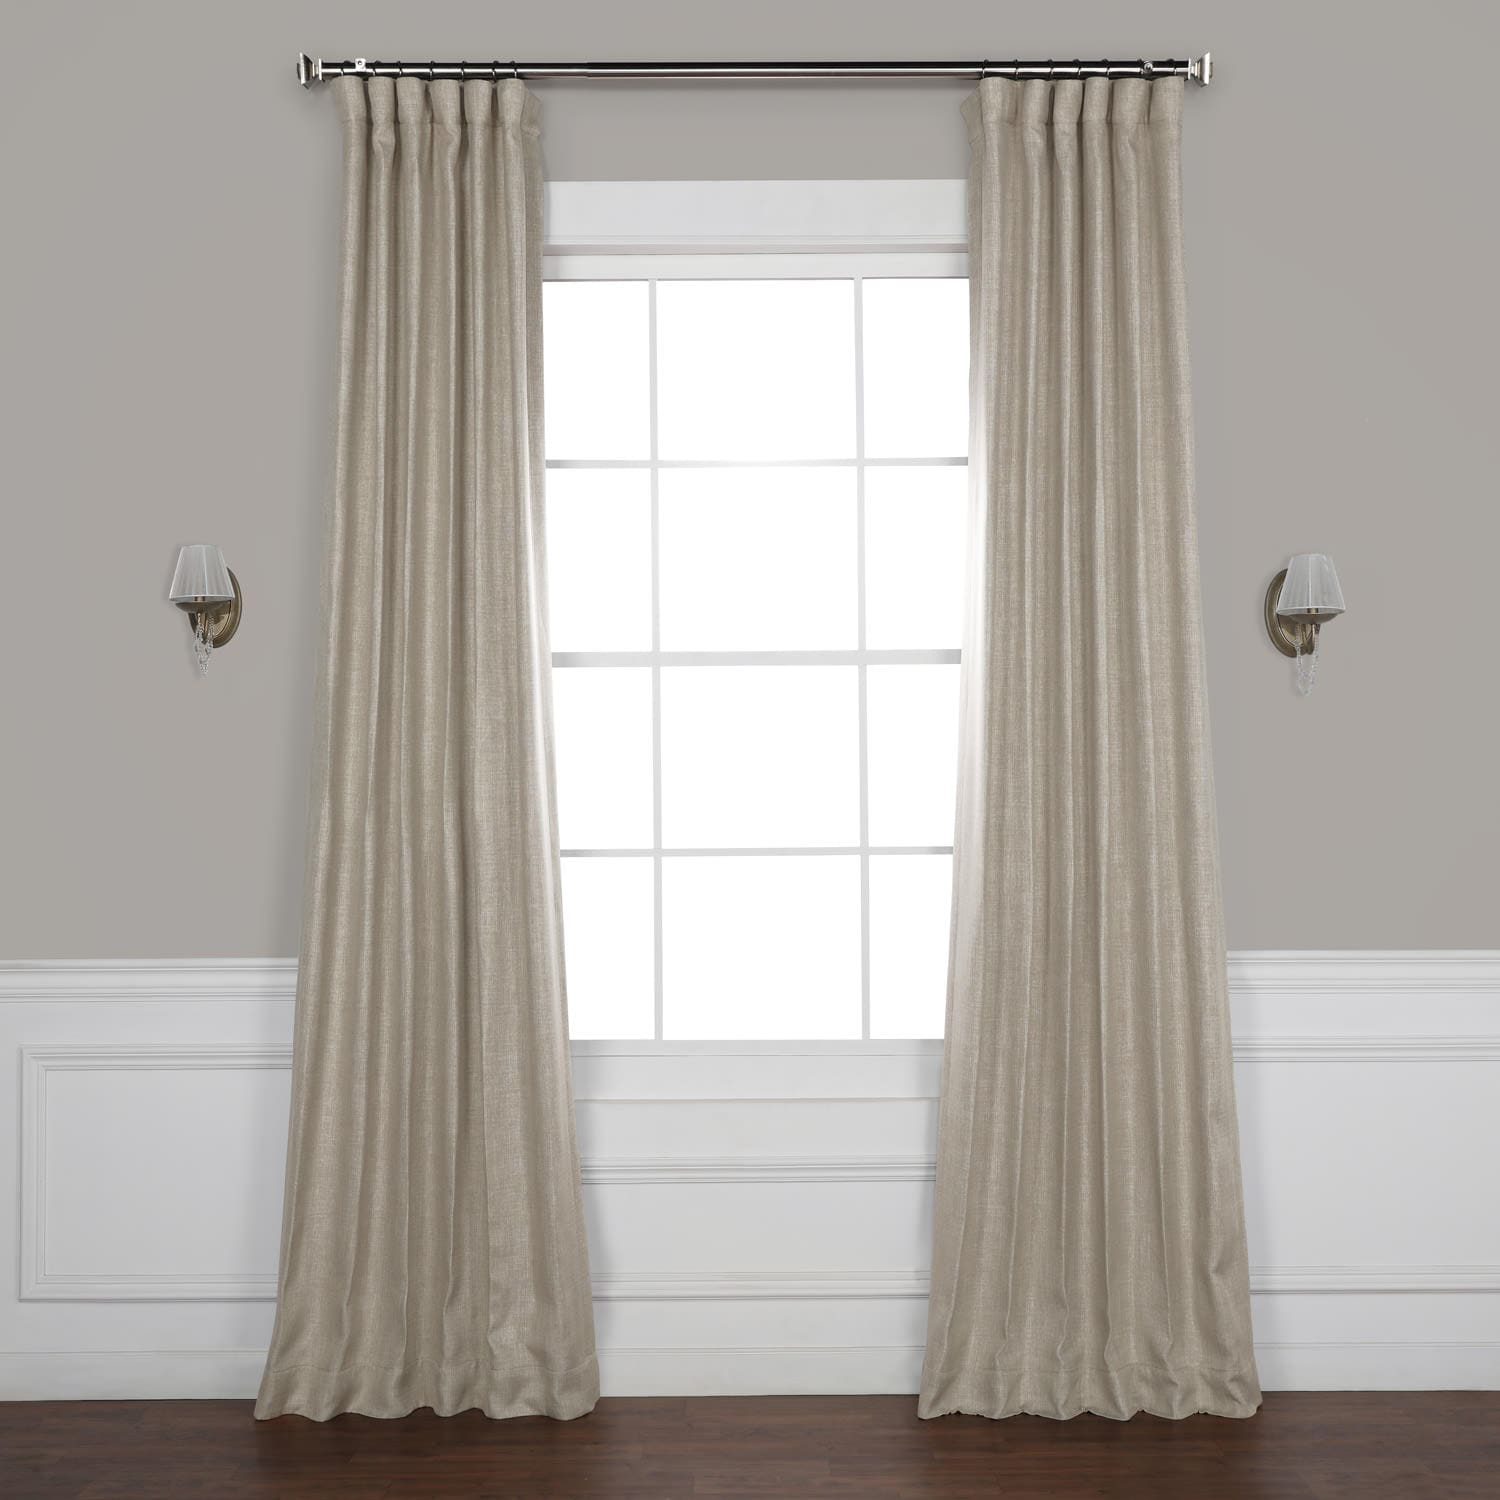 Oatmeal Faux Linen Blackout Curtain Inside Signature French Linen Curtain Panels (View 28 of 30)